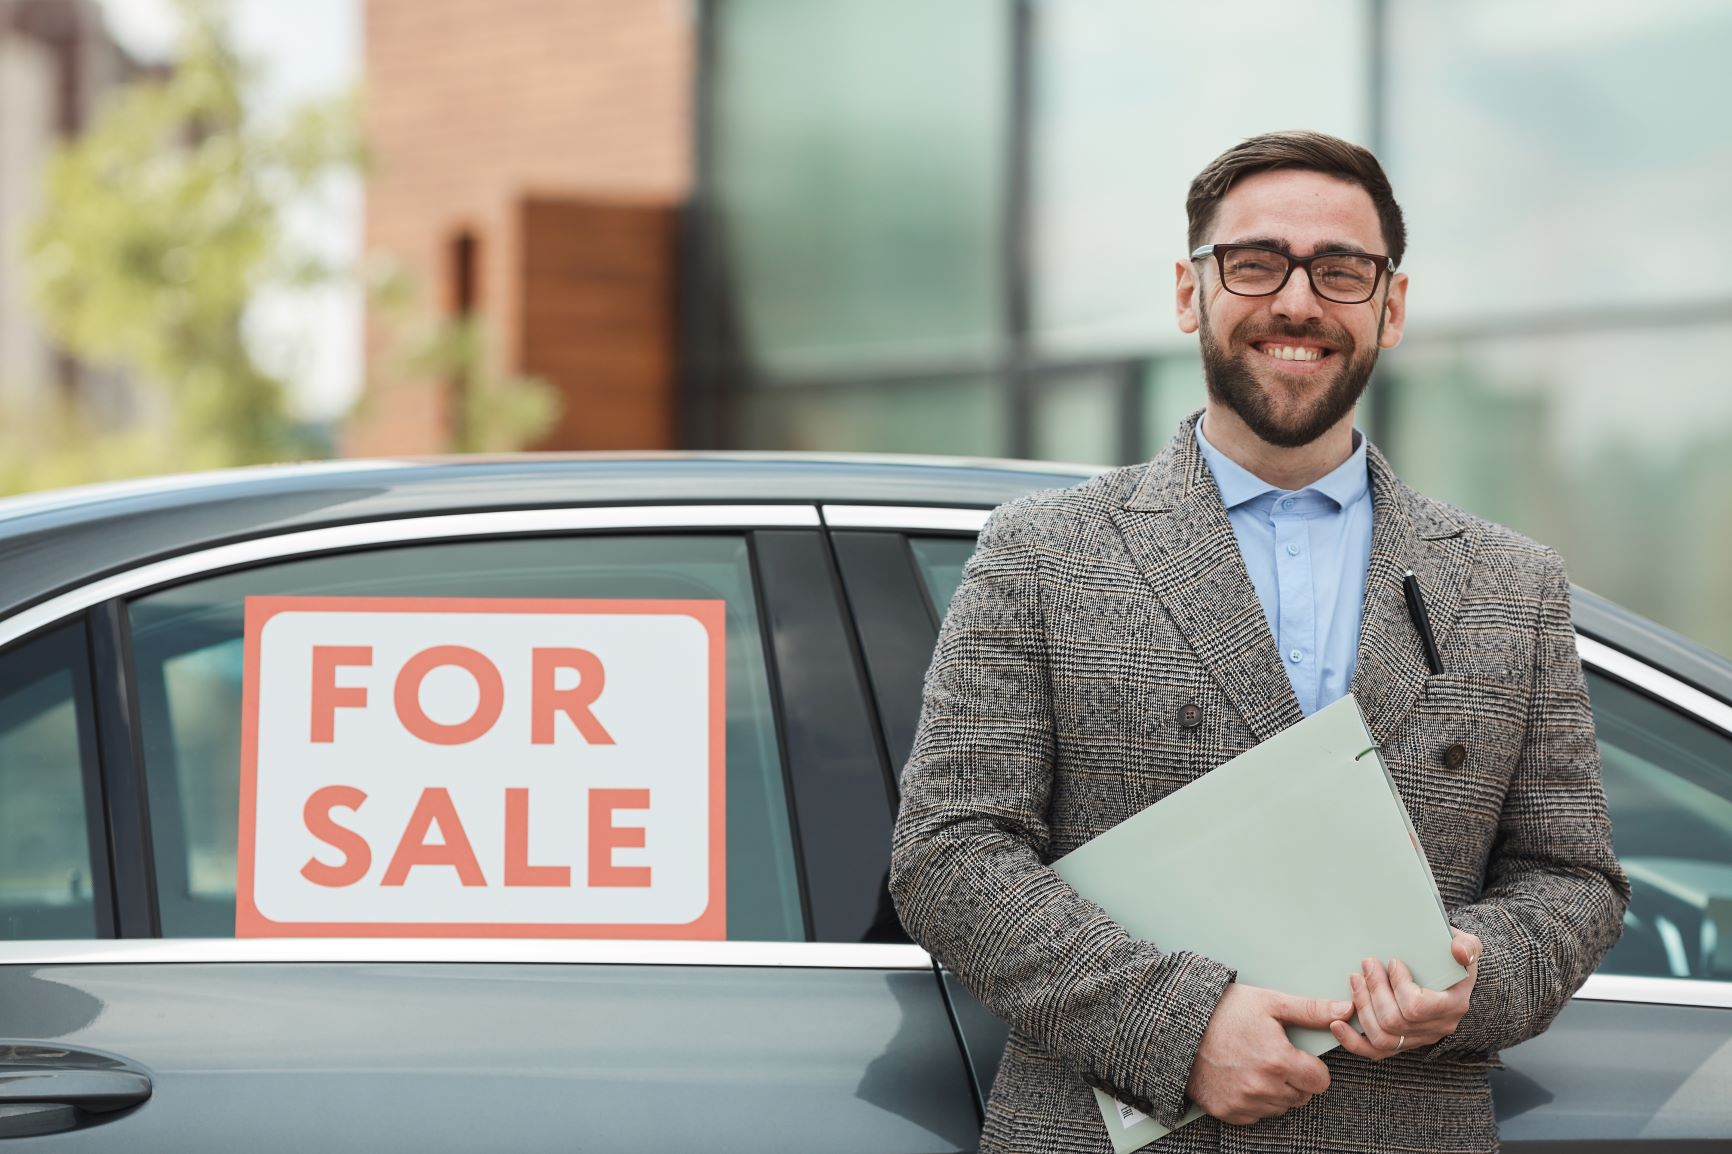 man standing in front of a car for sale